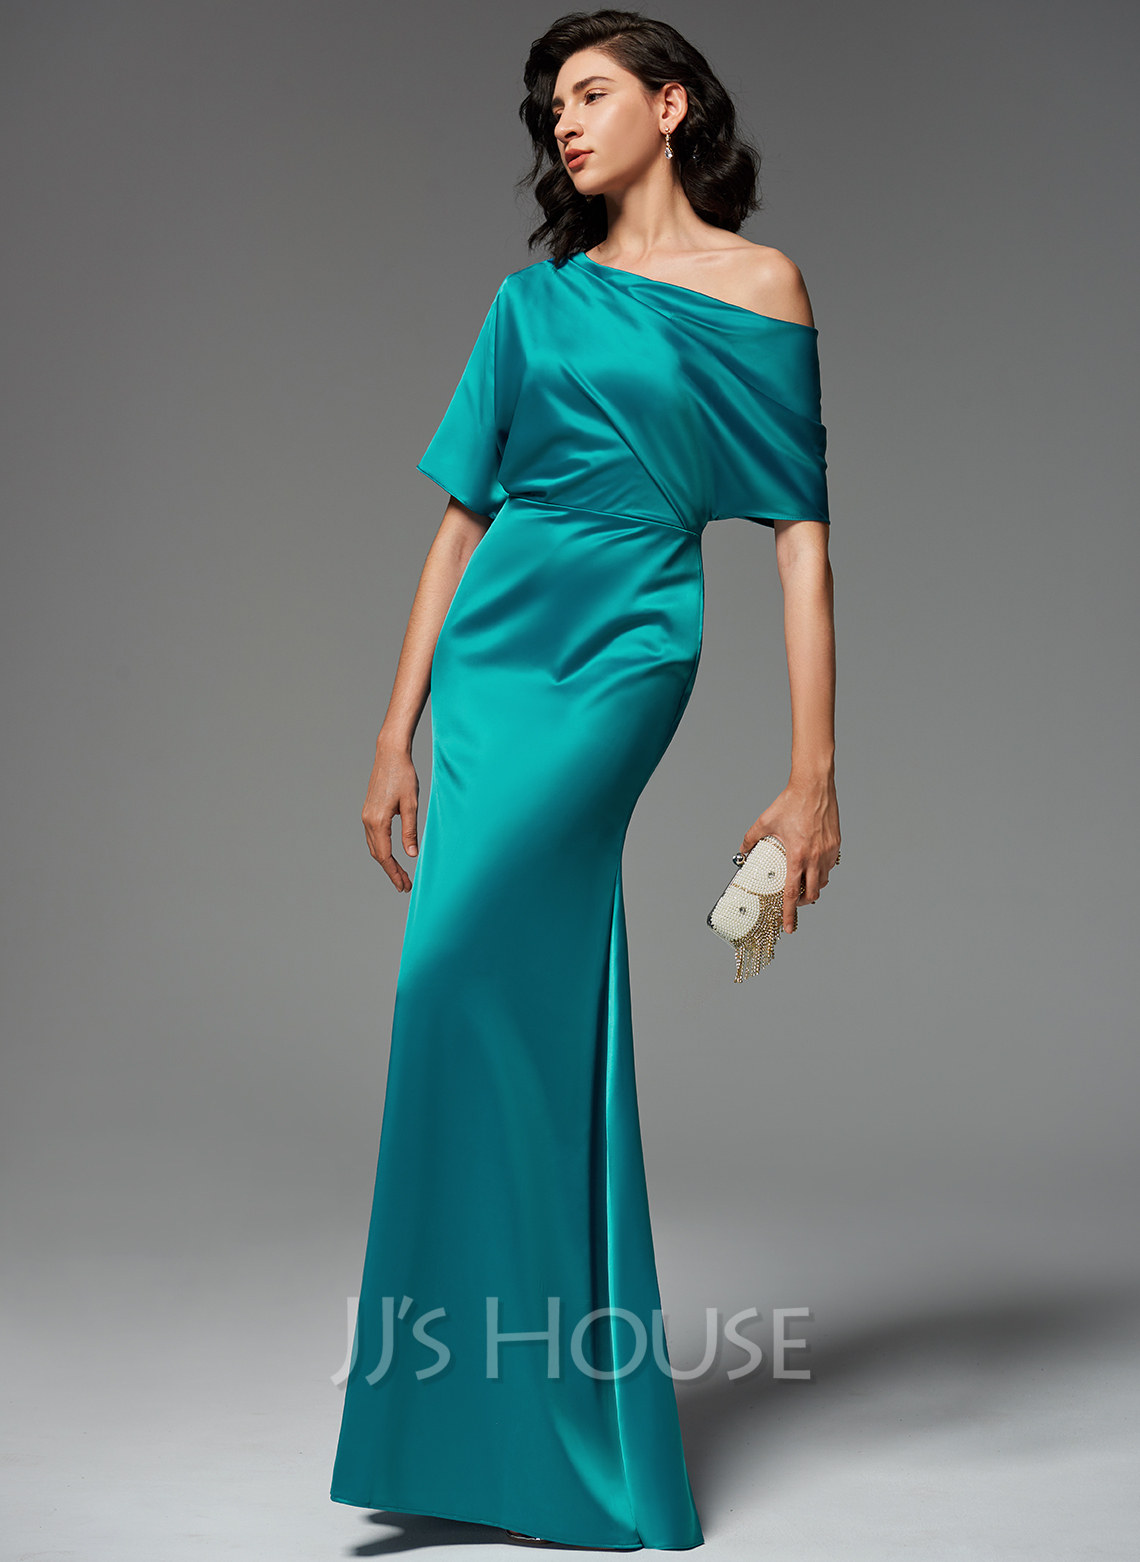 Trumpet/Mermaid One-Shoulder Floor-Length Evening Dress With Ruffle